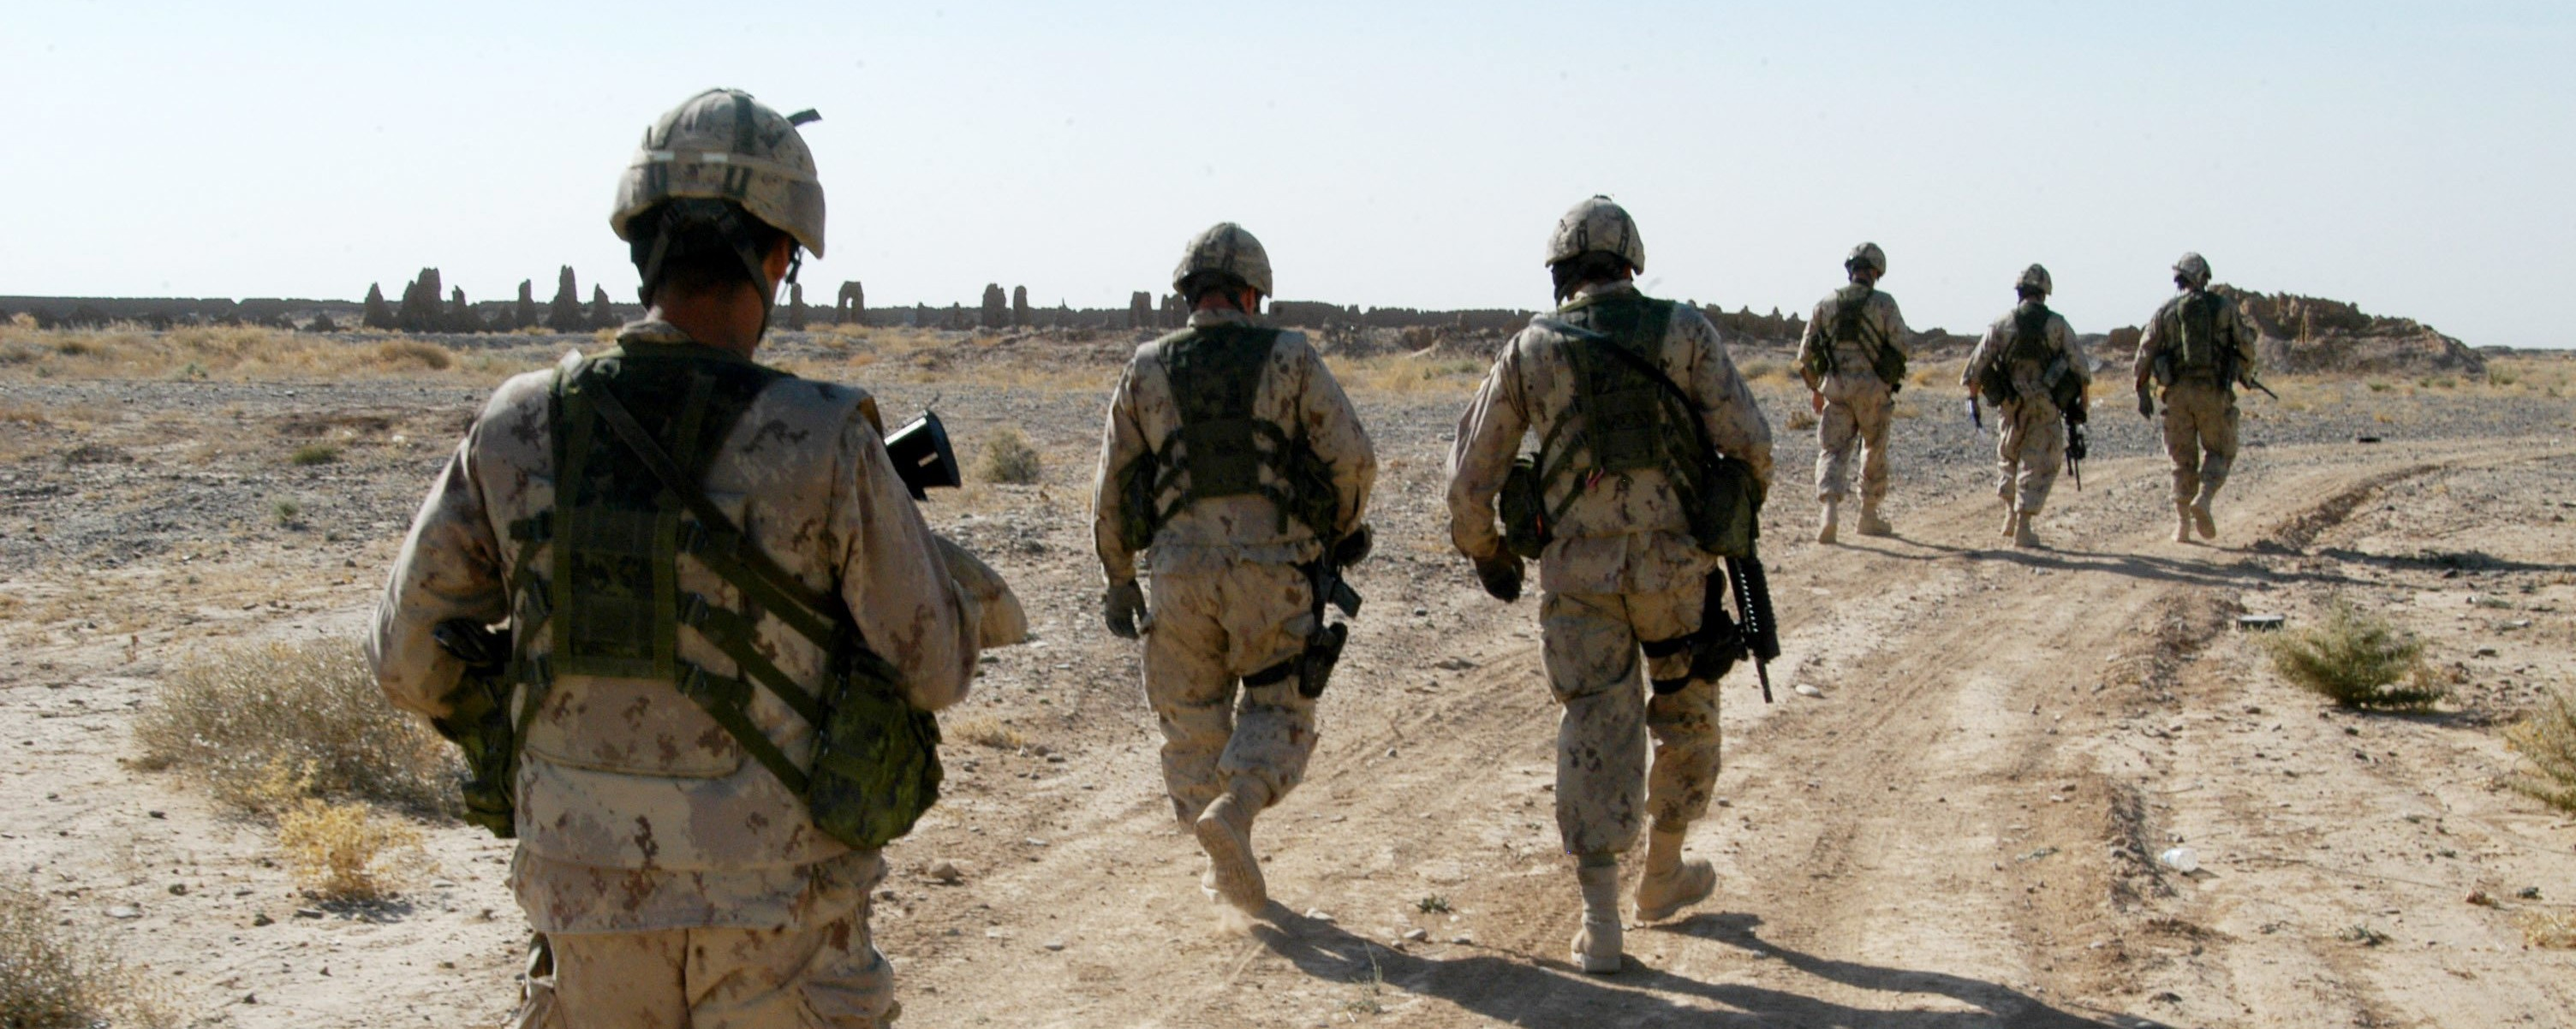 The Canadian Military Wants to Use Stem Cells to Help Its Soldiers Heal